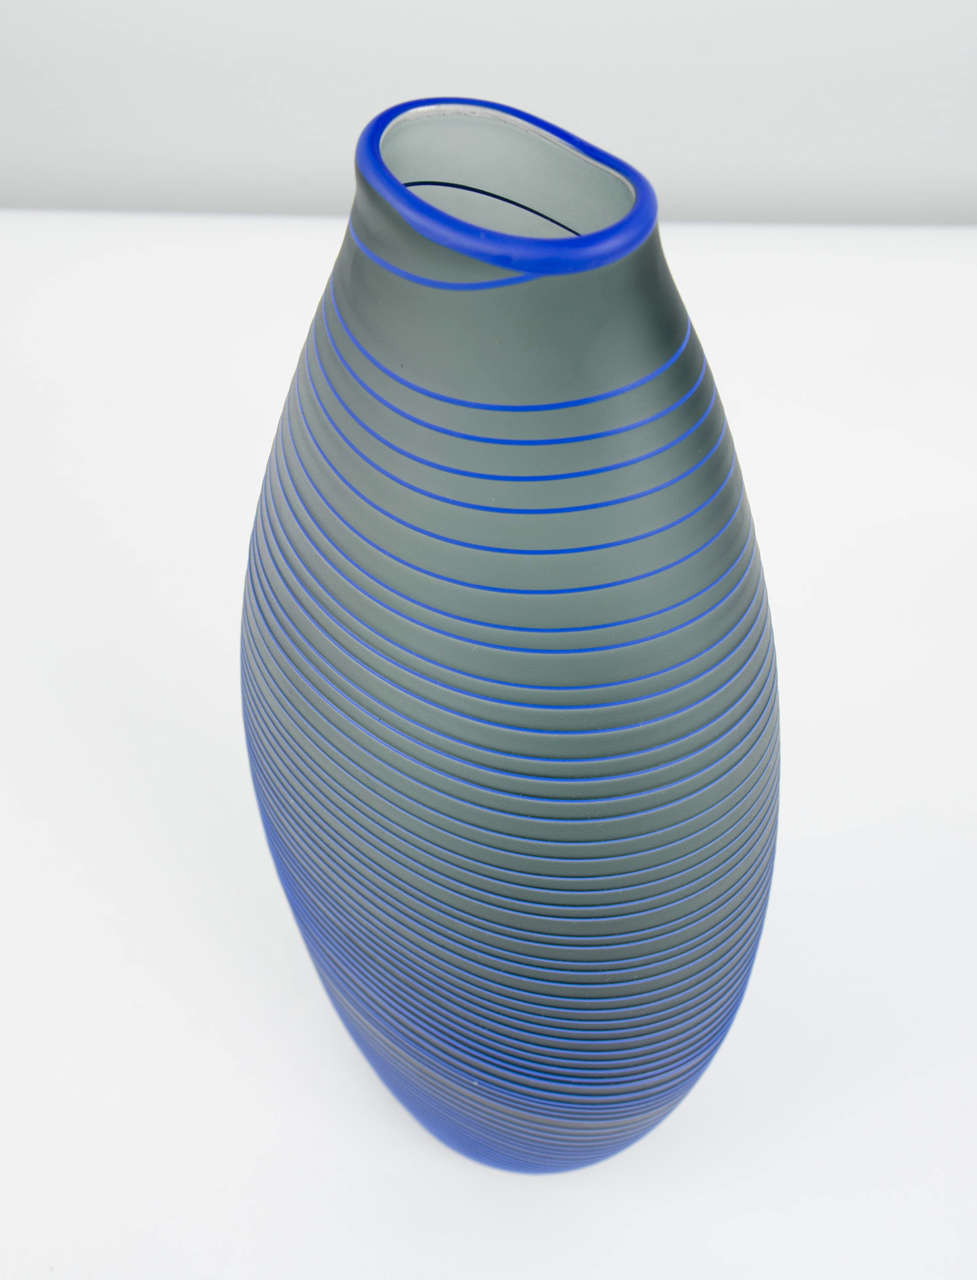 Tonal Frequency Vase in Grey is a unique handblown glass vessel with fine raised cane detail created by the British artist Liam Reeves. Handblown in grey glass, the exterior surface has a blue glass trail that winds around the entire piece, ending